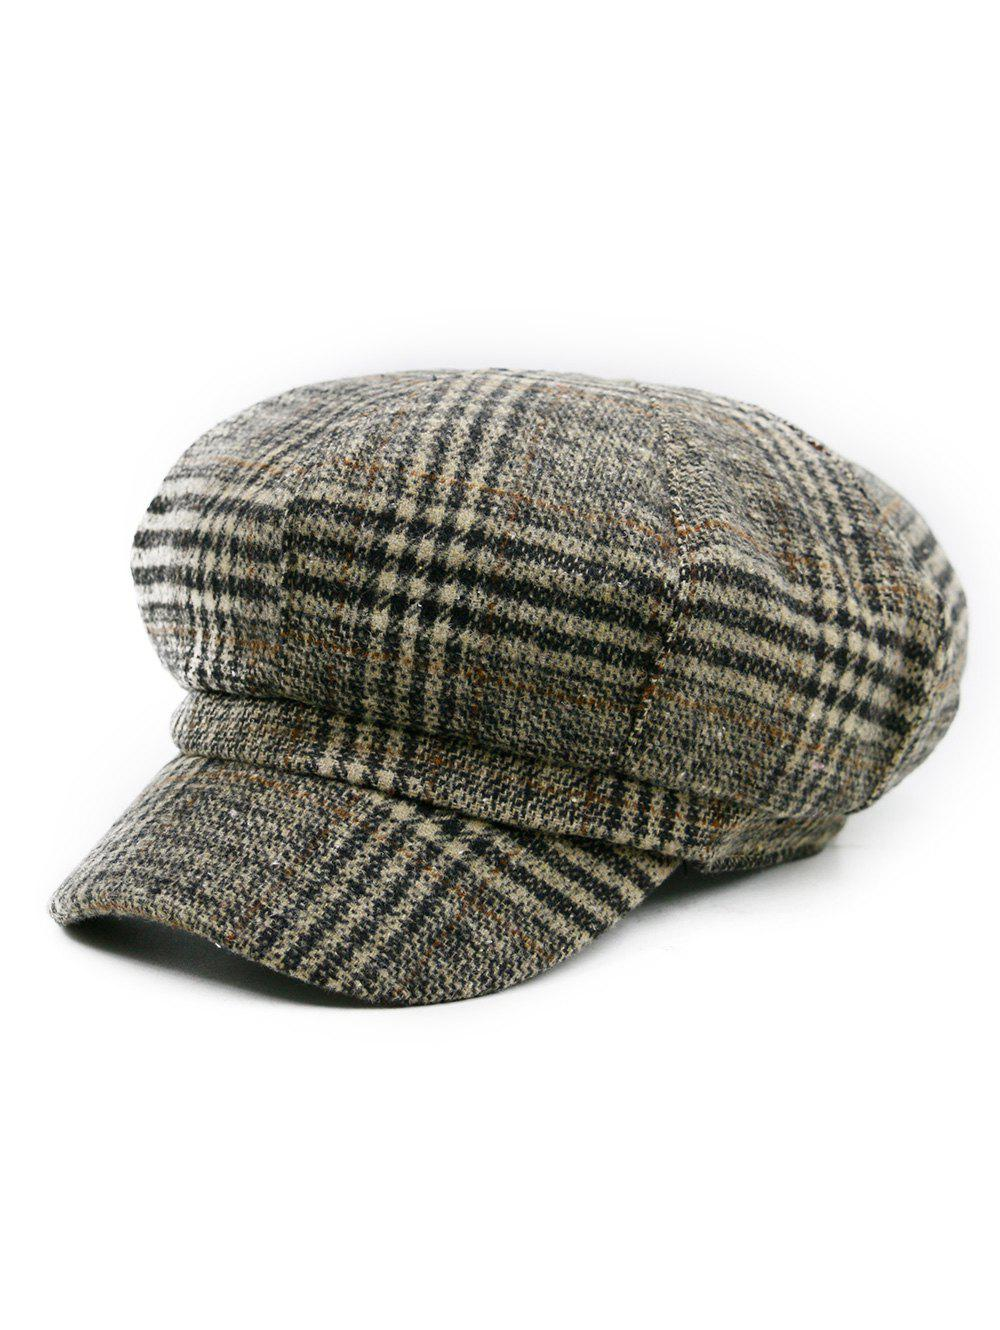 Vintage Houndstooth Pattern Embellished Newsboy HatACCESSORIES<br><br>Color: PATTERN C; Hat Type: Newsboy Caps; Group: Adult; Gender: For Men; Style: Fashion; Pattern Type: Others; Material: Acrylic; Circumference (CM): 56-57CM; Weight: 0.1200kg; Package Contents: 1 x Hat;